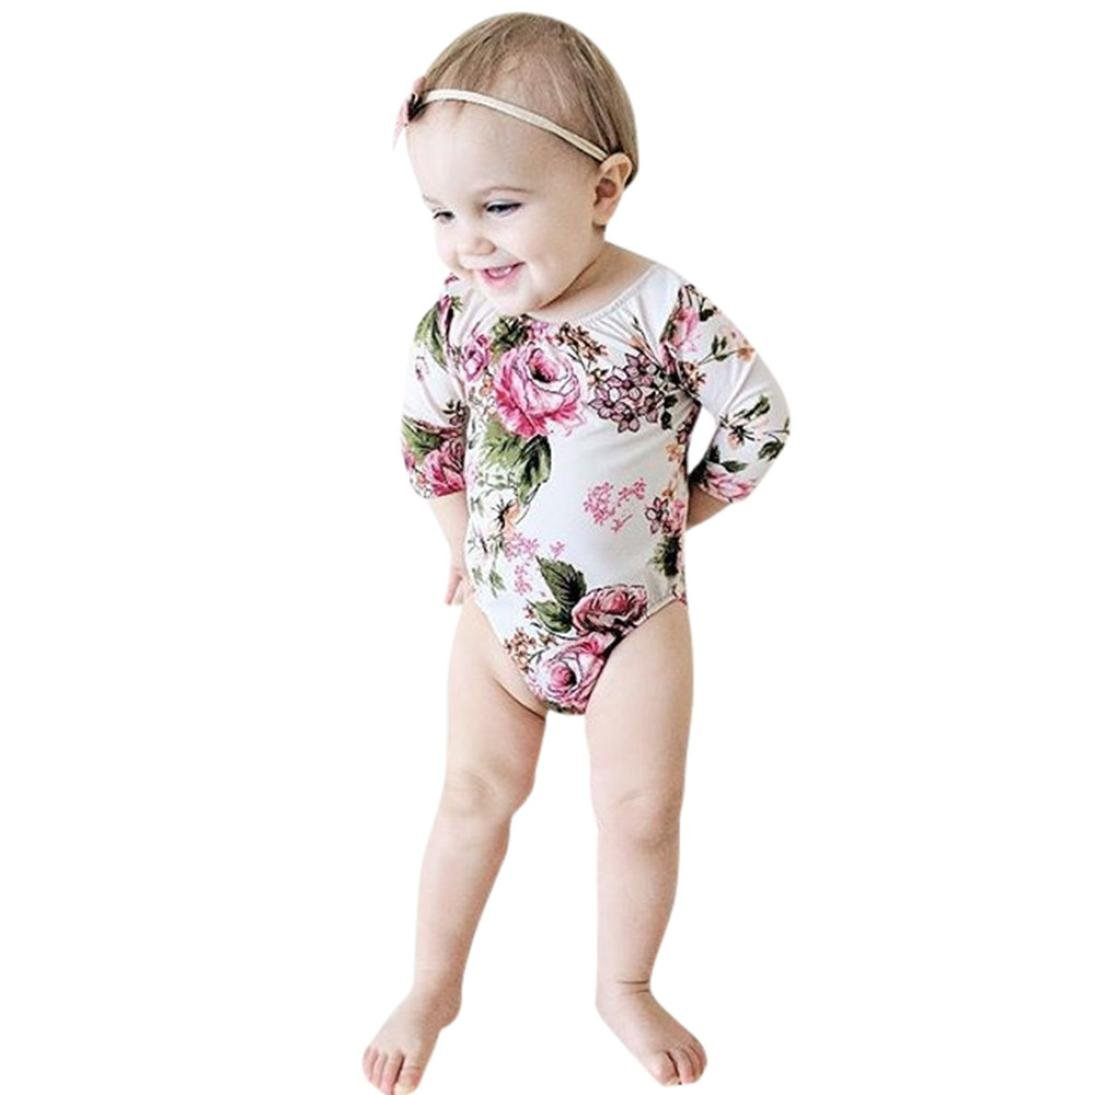 ANBOO Newborn Toddler Baby Girls Floral Print Romper Jumpsuit Outfits Clothes